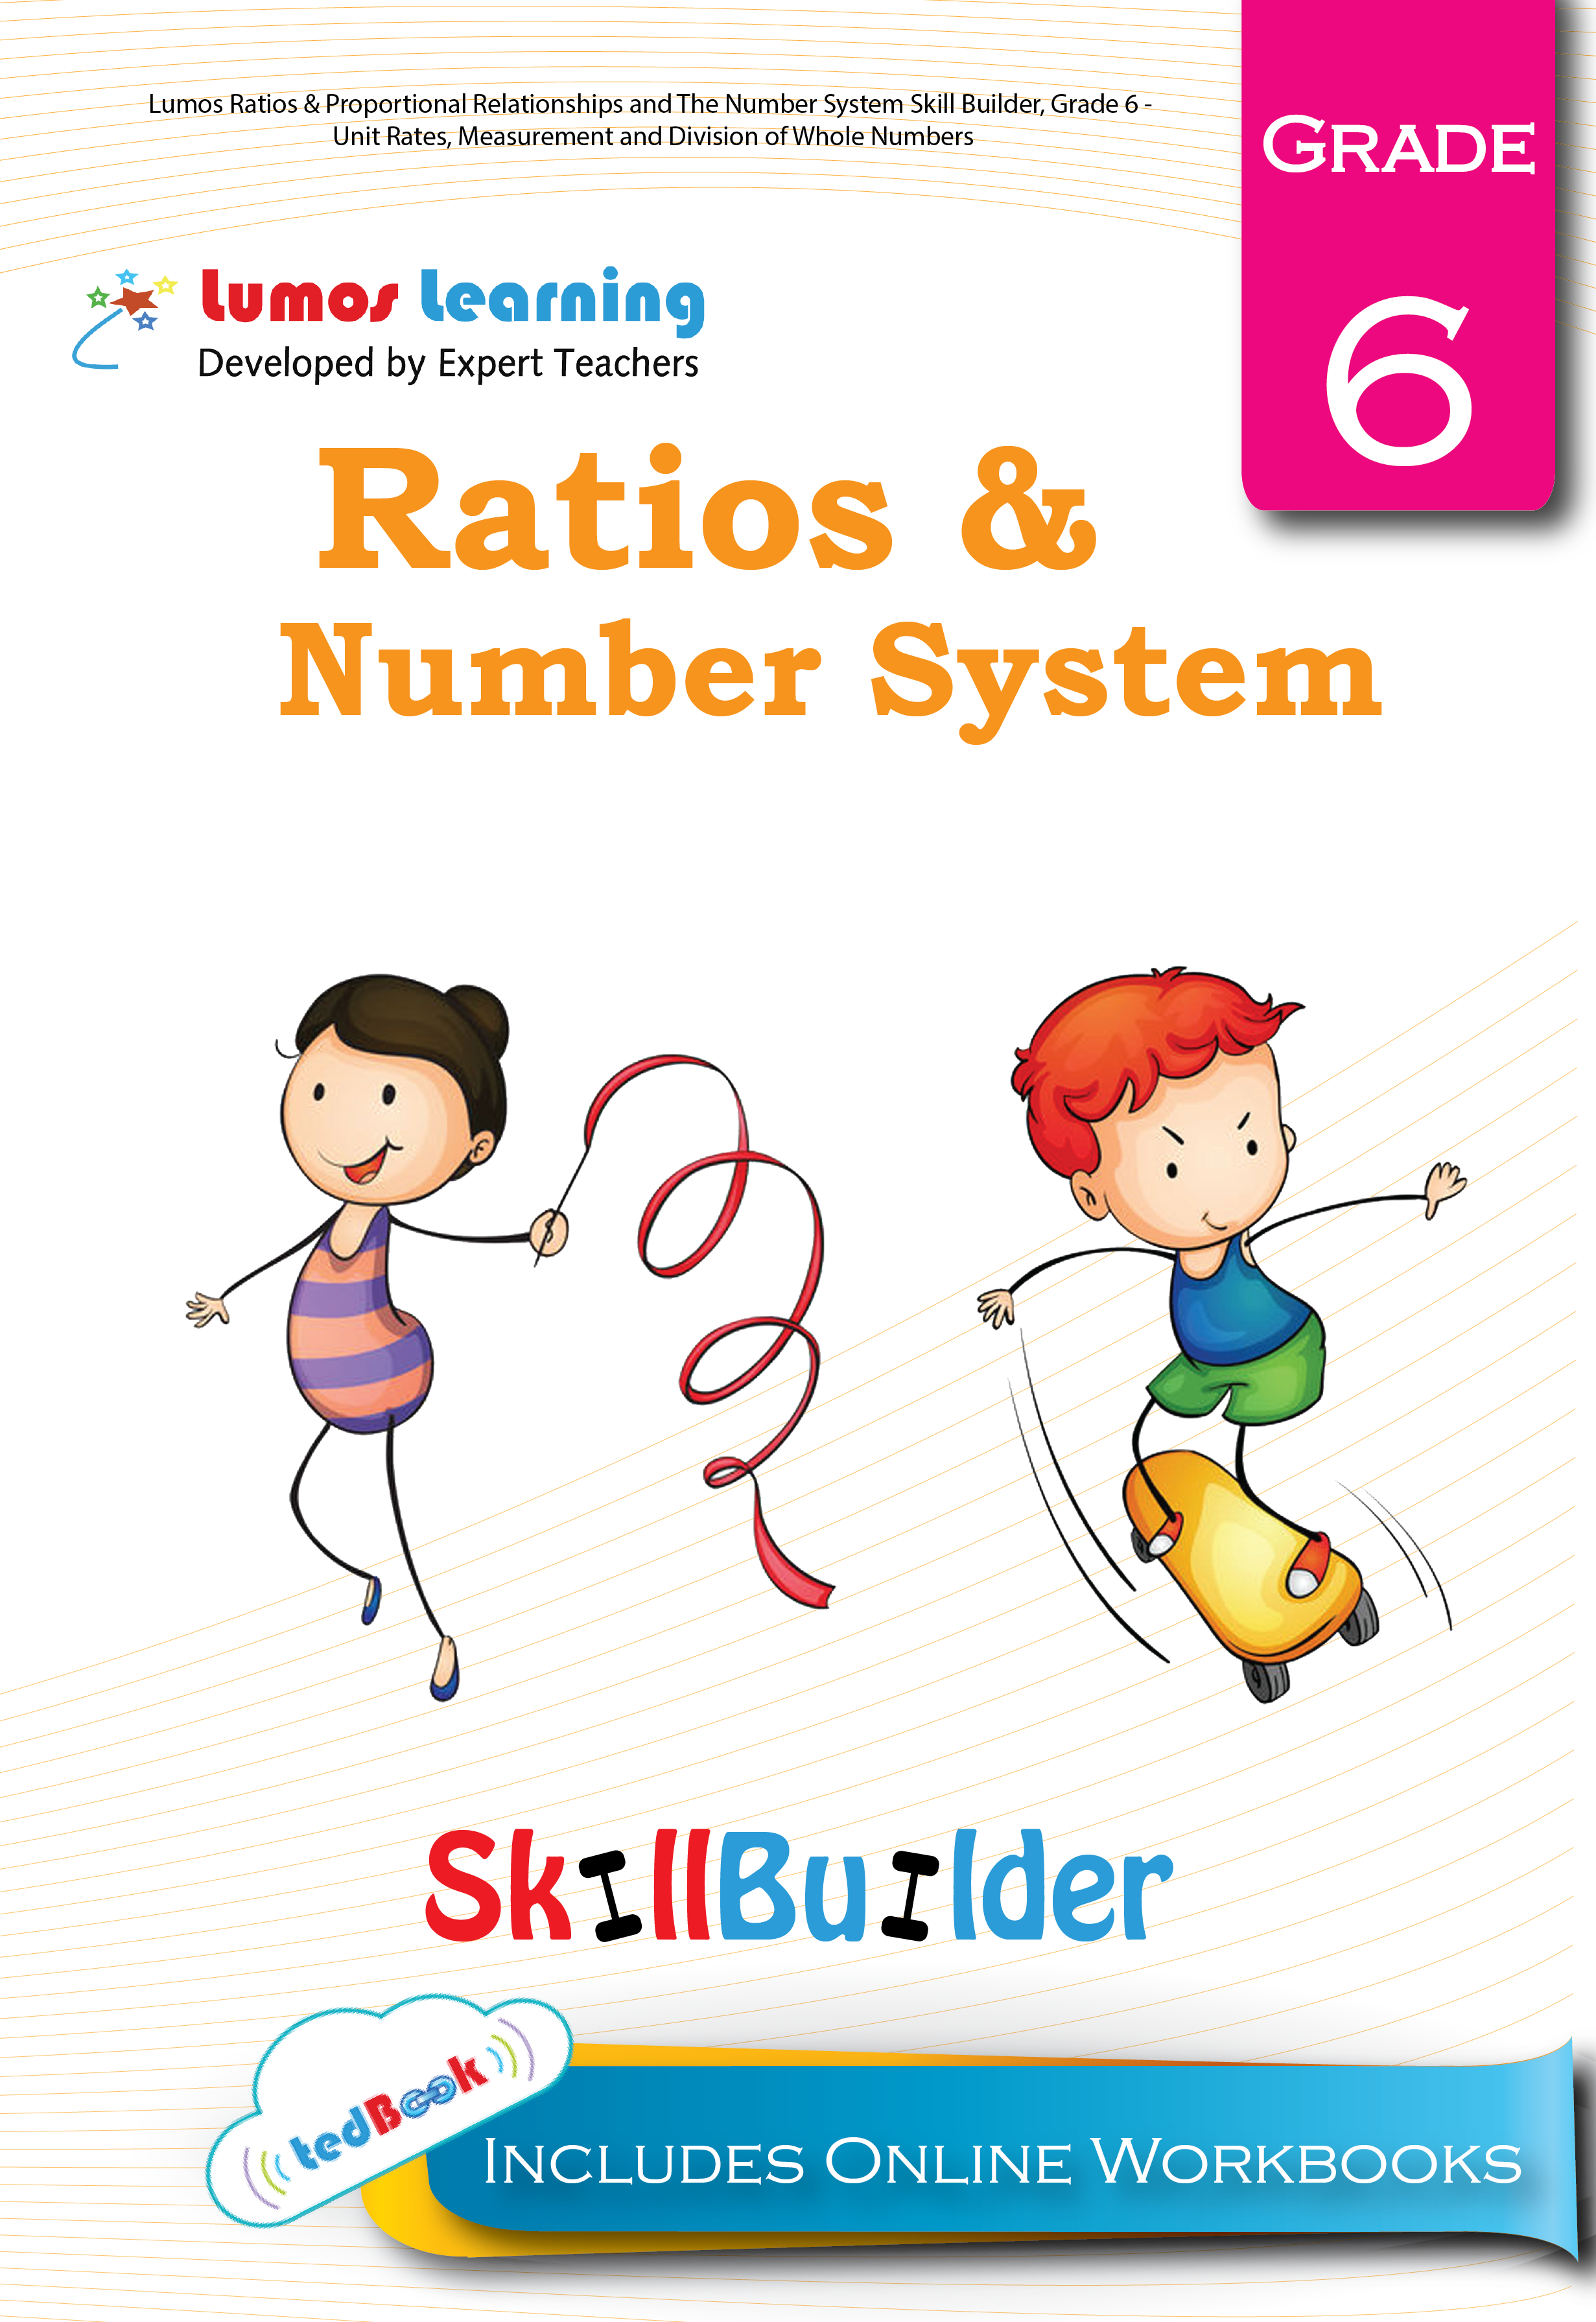 ratios and number system grade 6